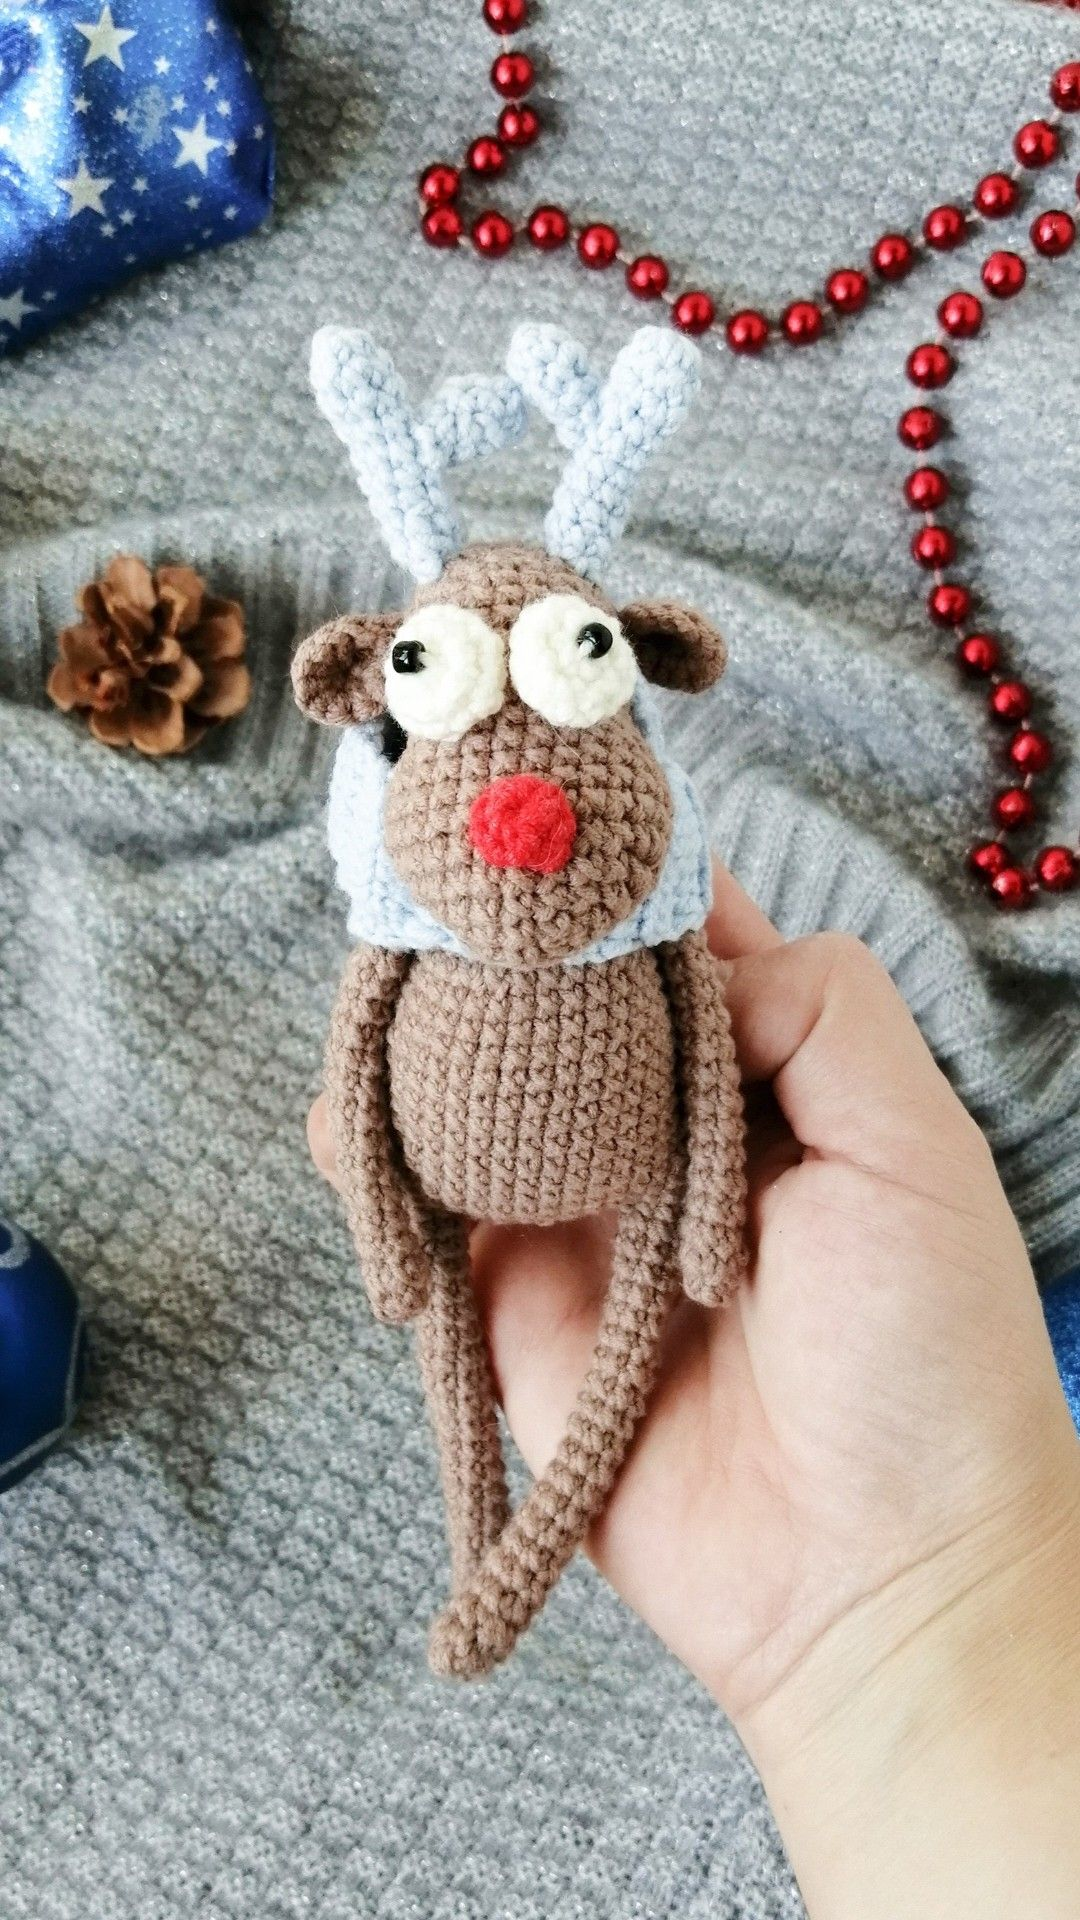 Funny Rudolph toy . Cute little creature Christmas